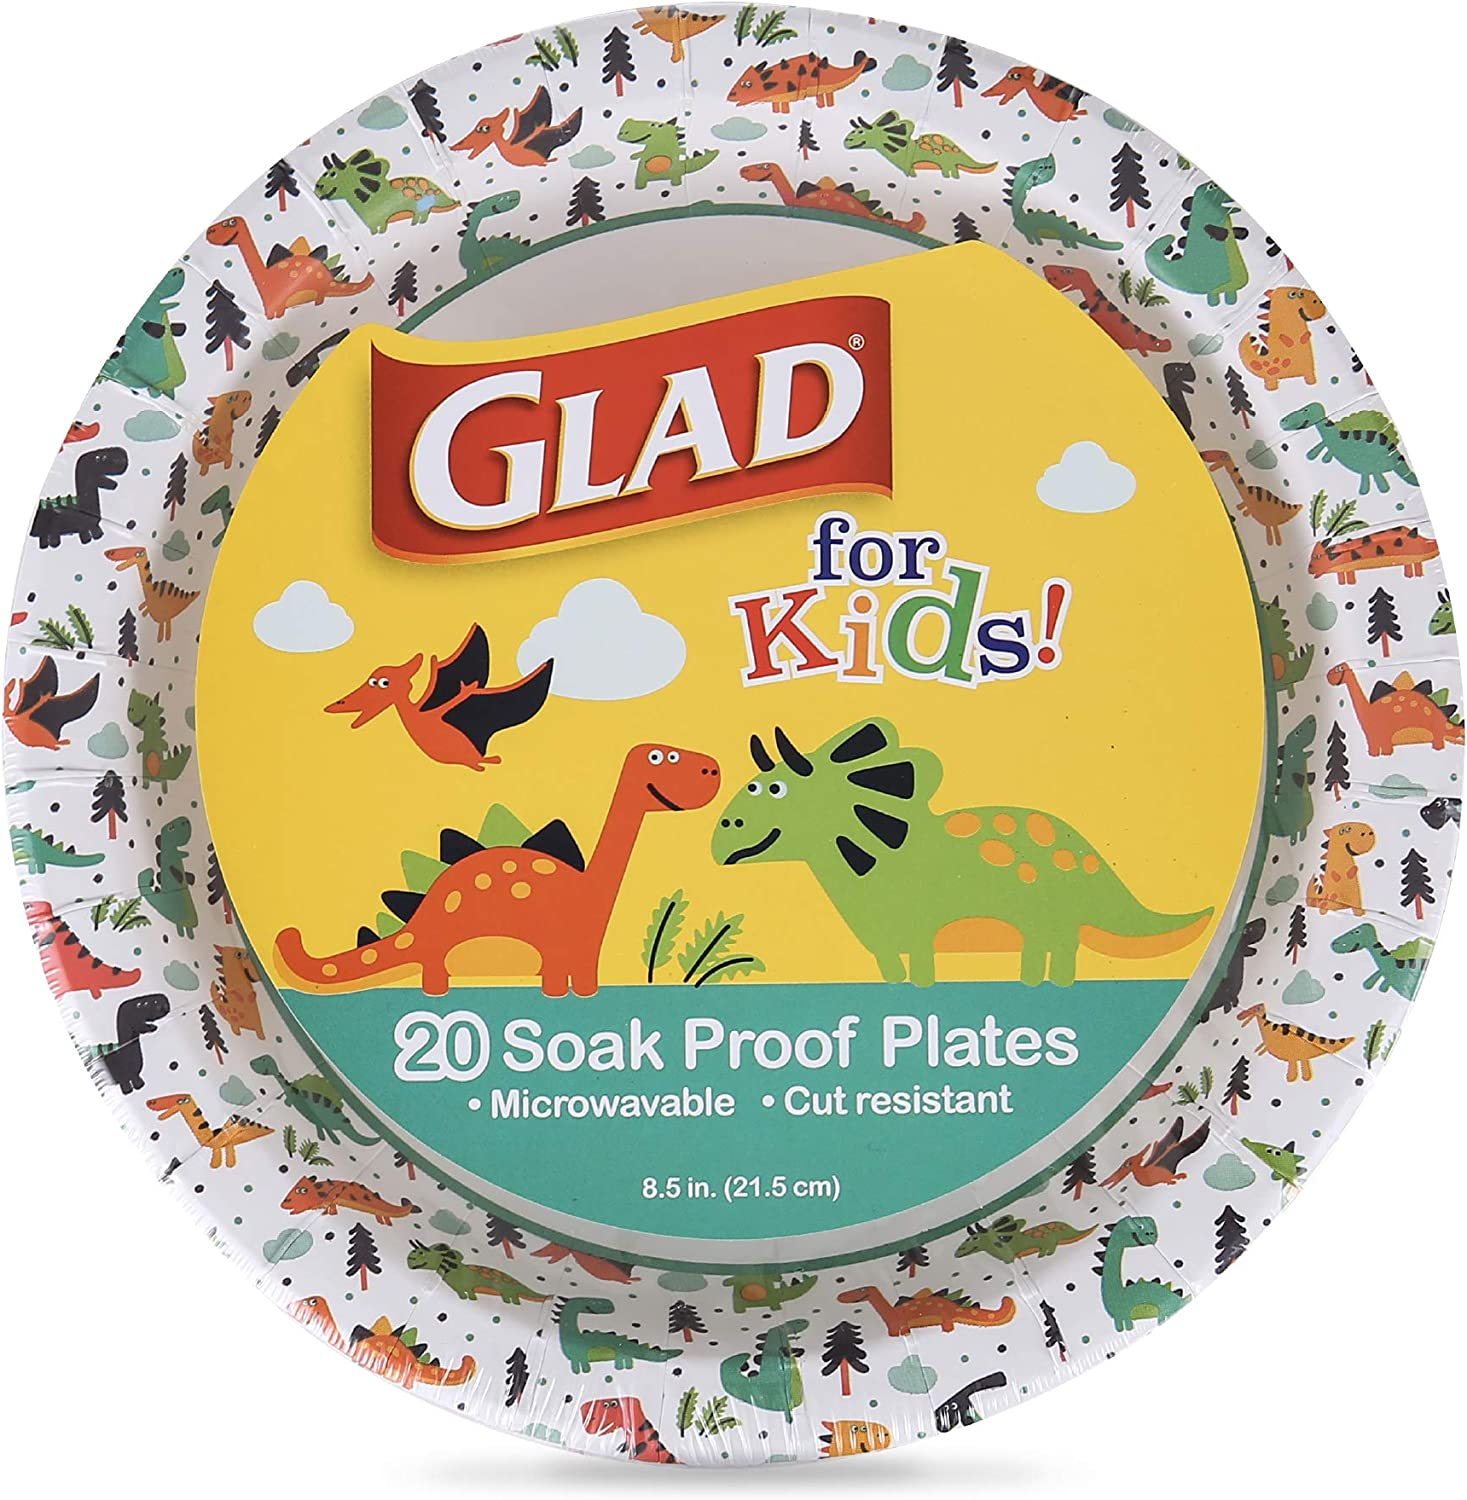 Glad for Kids 8 1/2-Inch Paper Plates | Small Round Paper Plates with Cute Dinosaur Design for Kids | Heavy Duty Disposable Soak Proof Microwavable Paper Plates for All Occasions, 20 Count